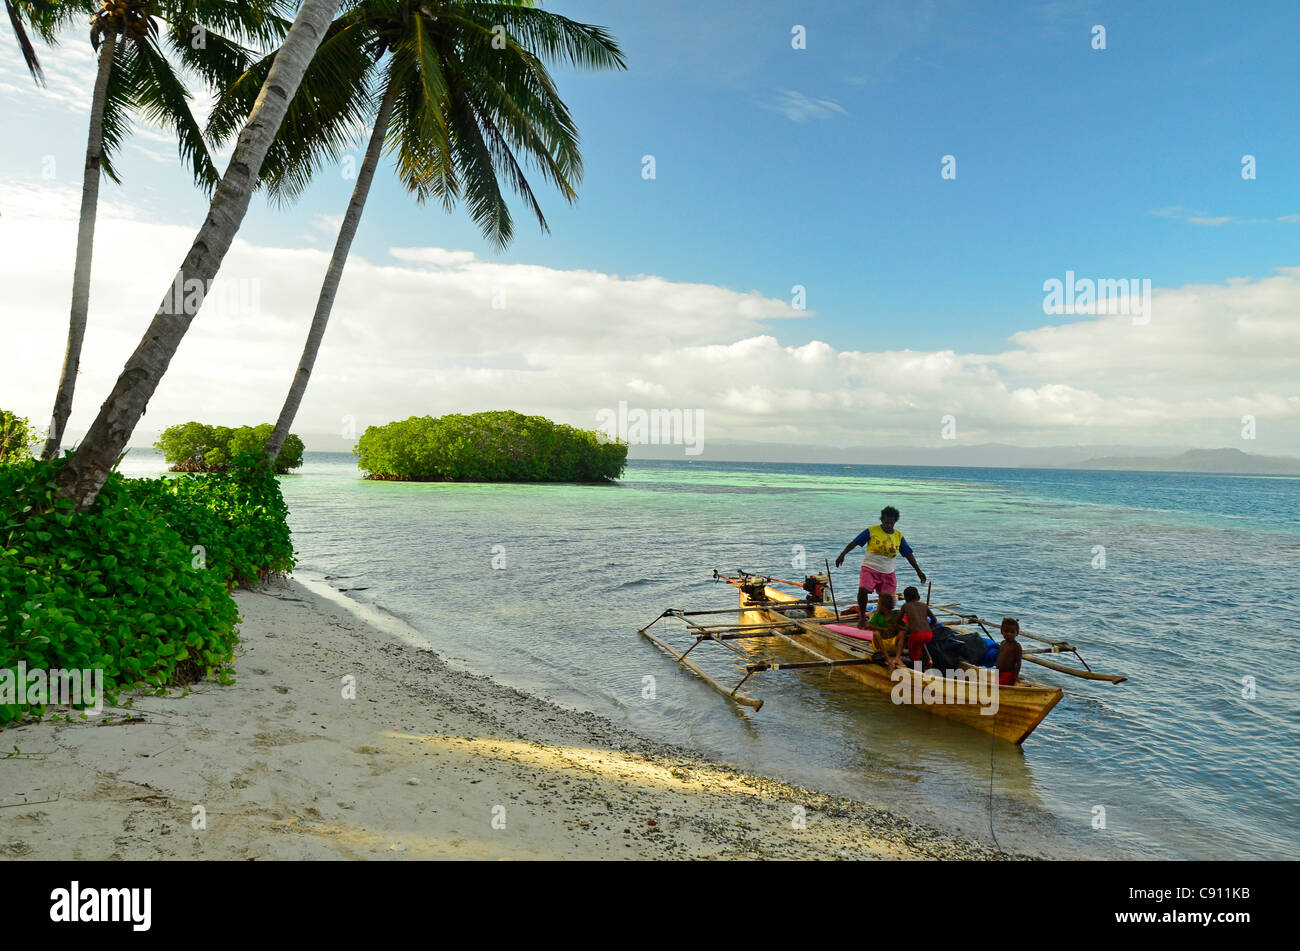 Papuan fishermen arrive at Paniki Island, Raja Ampat islands near West Papua, Indonesia in the coral triangle, Pacific - Stock Image